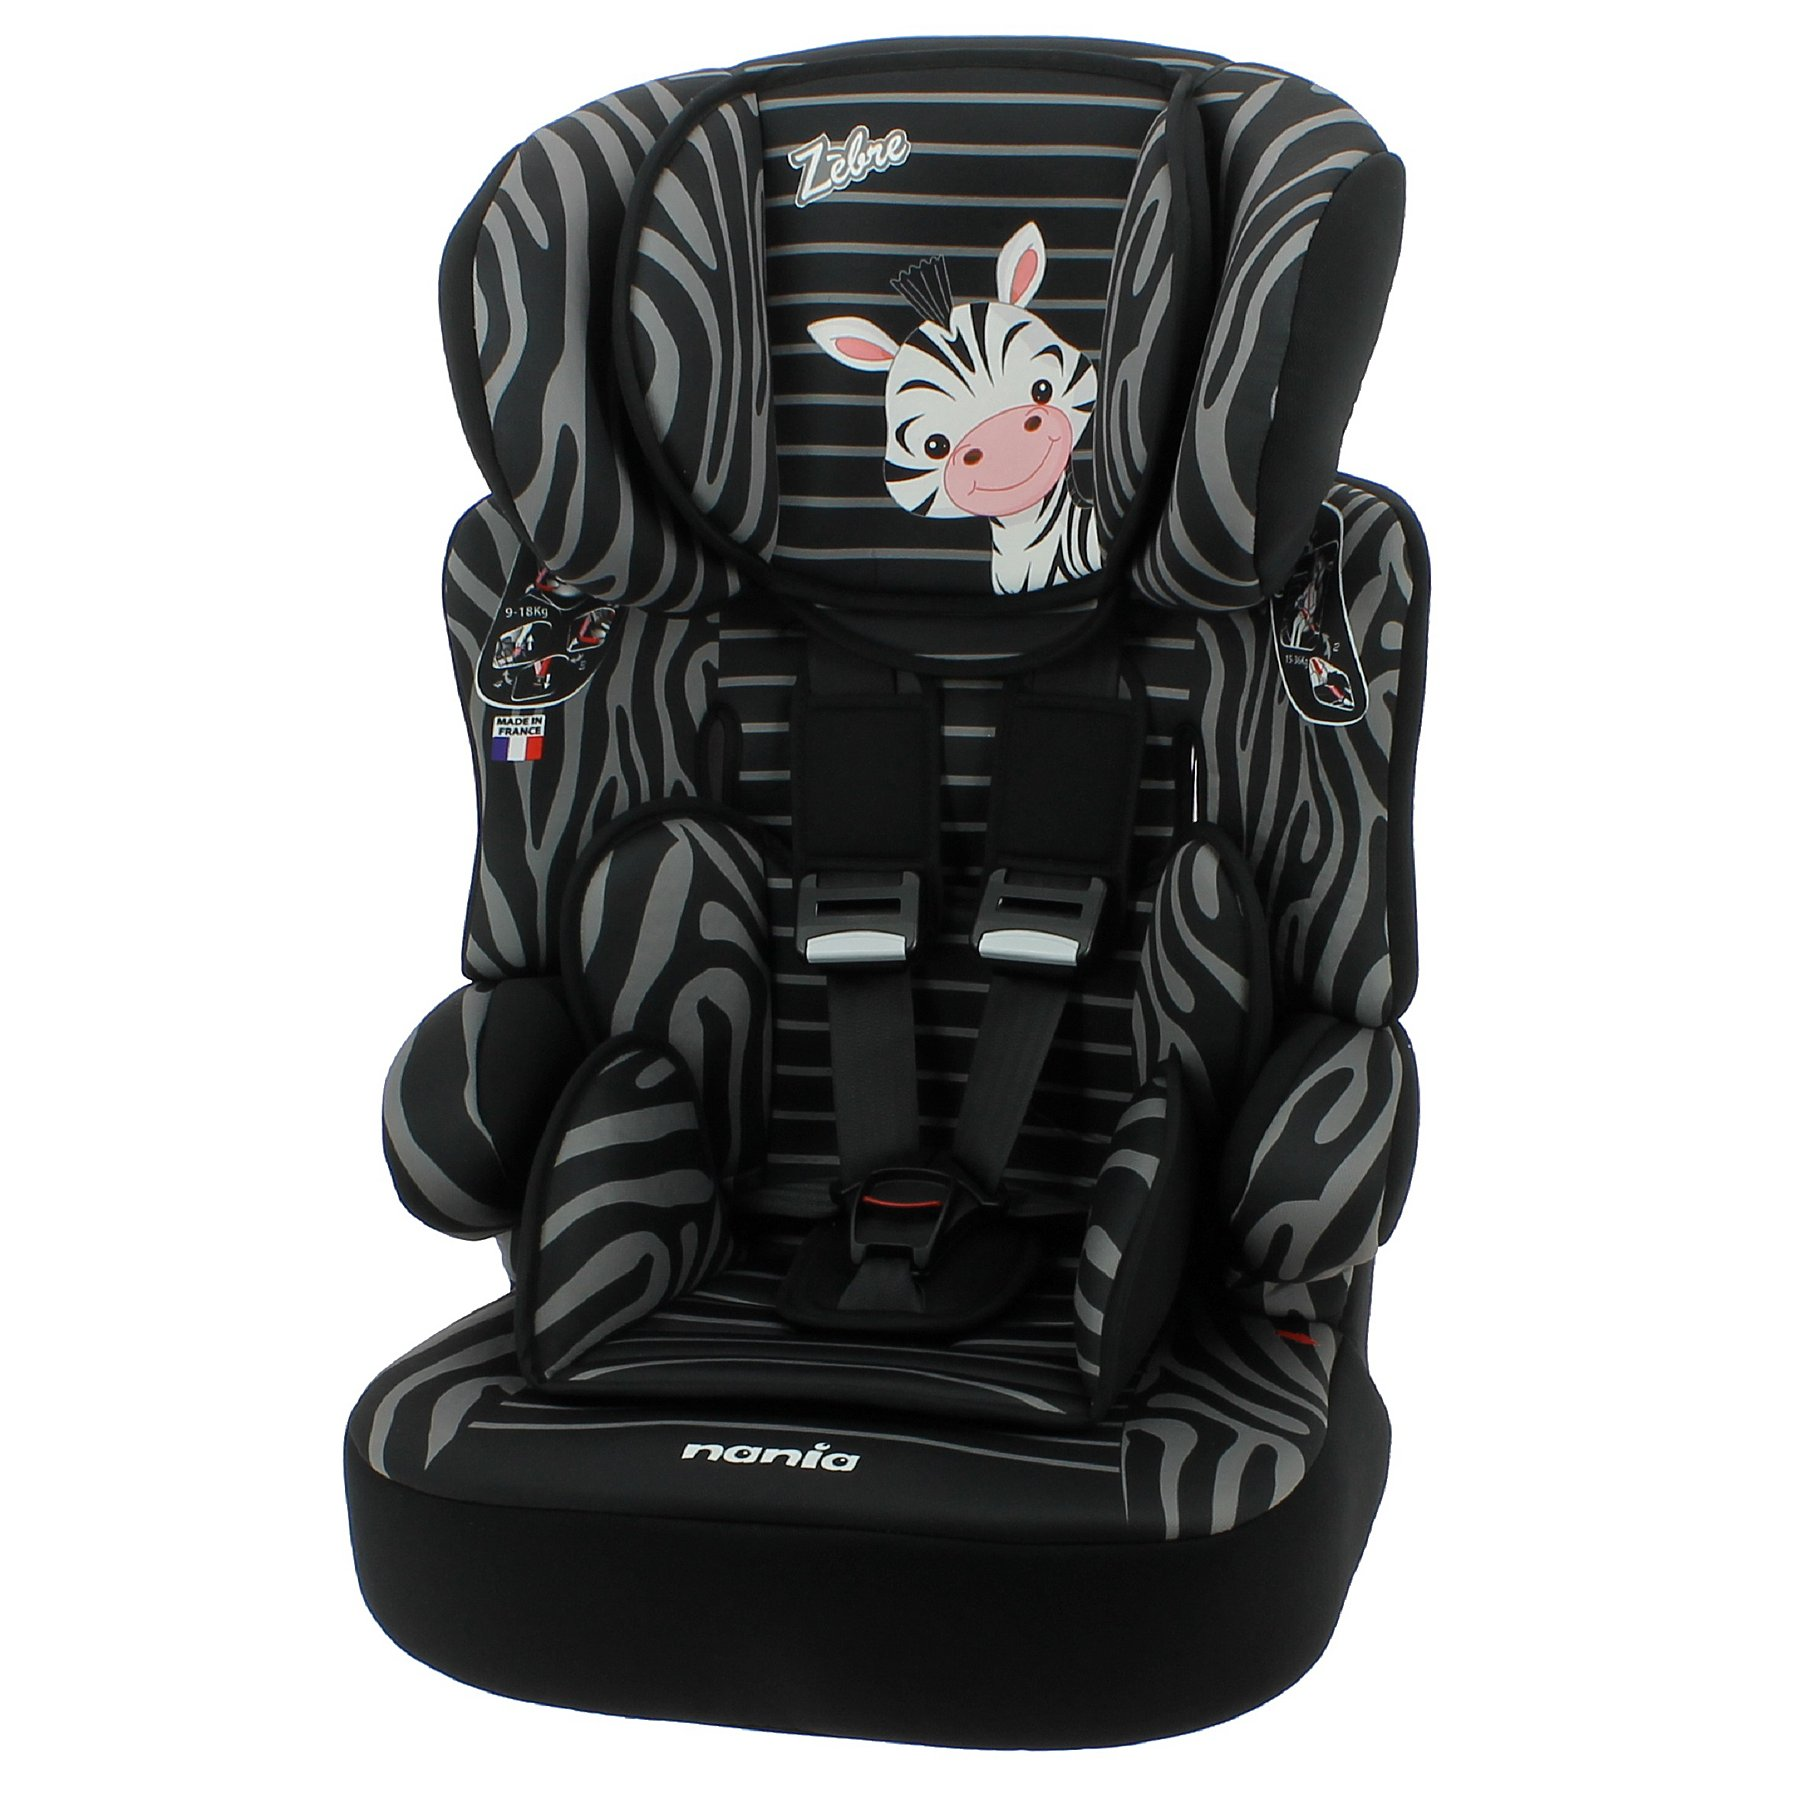 9a70a334385c Nania Group 123 Beline High Back Booster Seat with Harness - Zebra ...